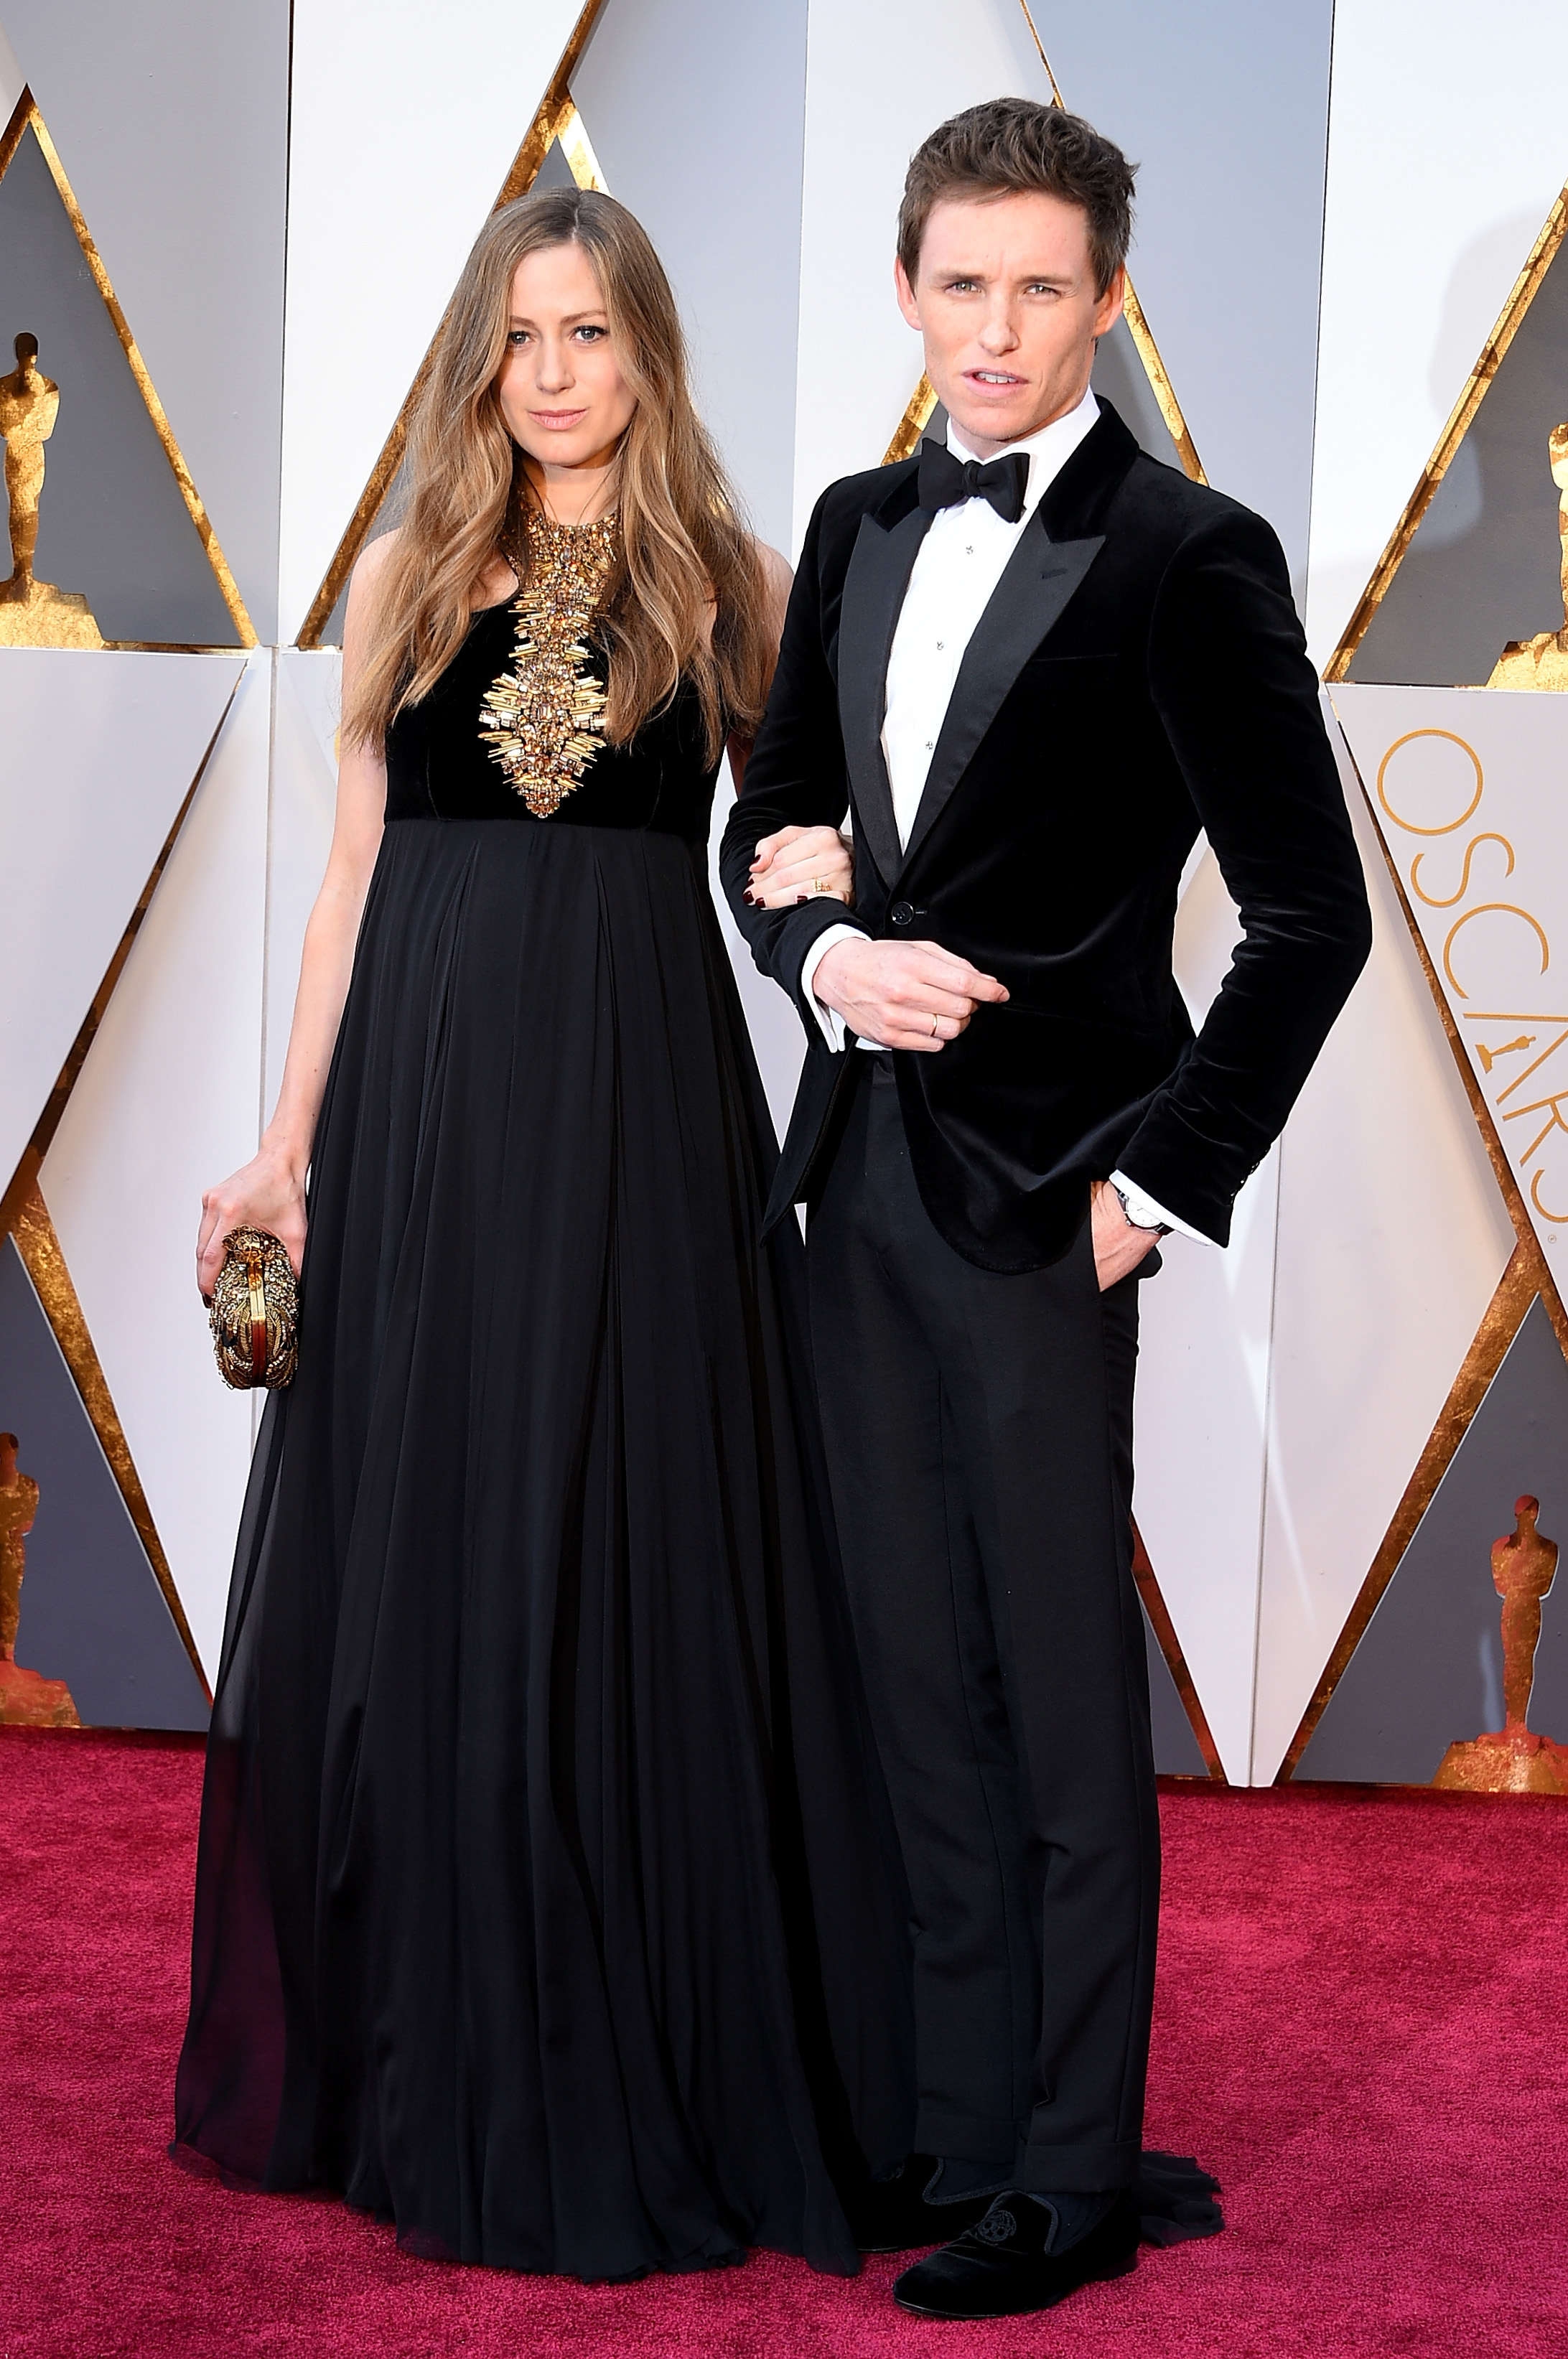 Hannah Redmayne and Eddie Redmayne attend the 88th Annual Academy Awards on Feb. 28, 2016 in Hollywood, Calif.